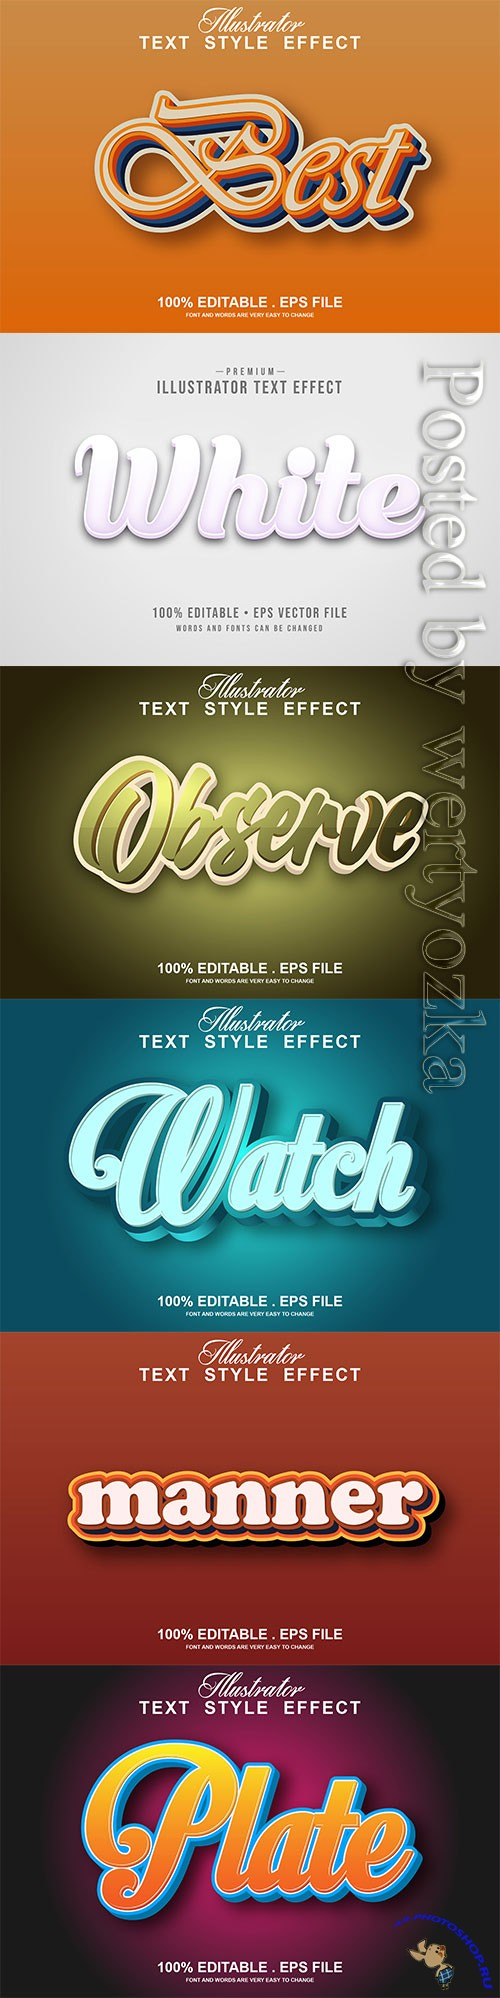 3d editable text style effect vector vol 293